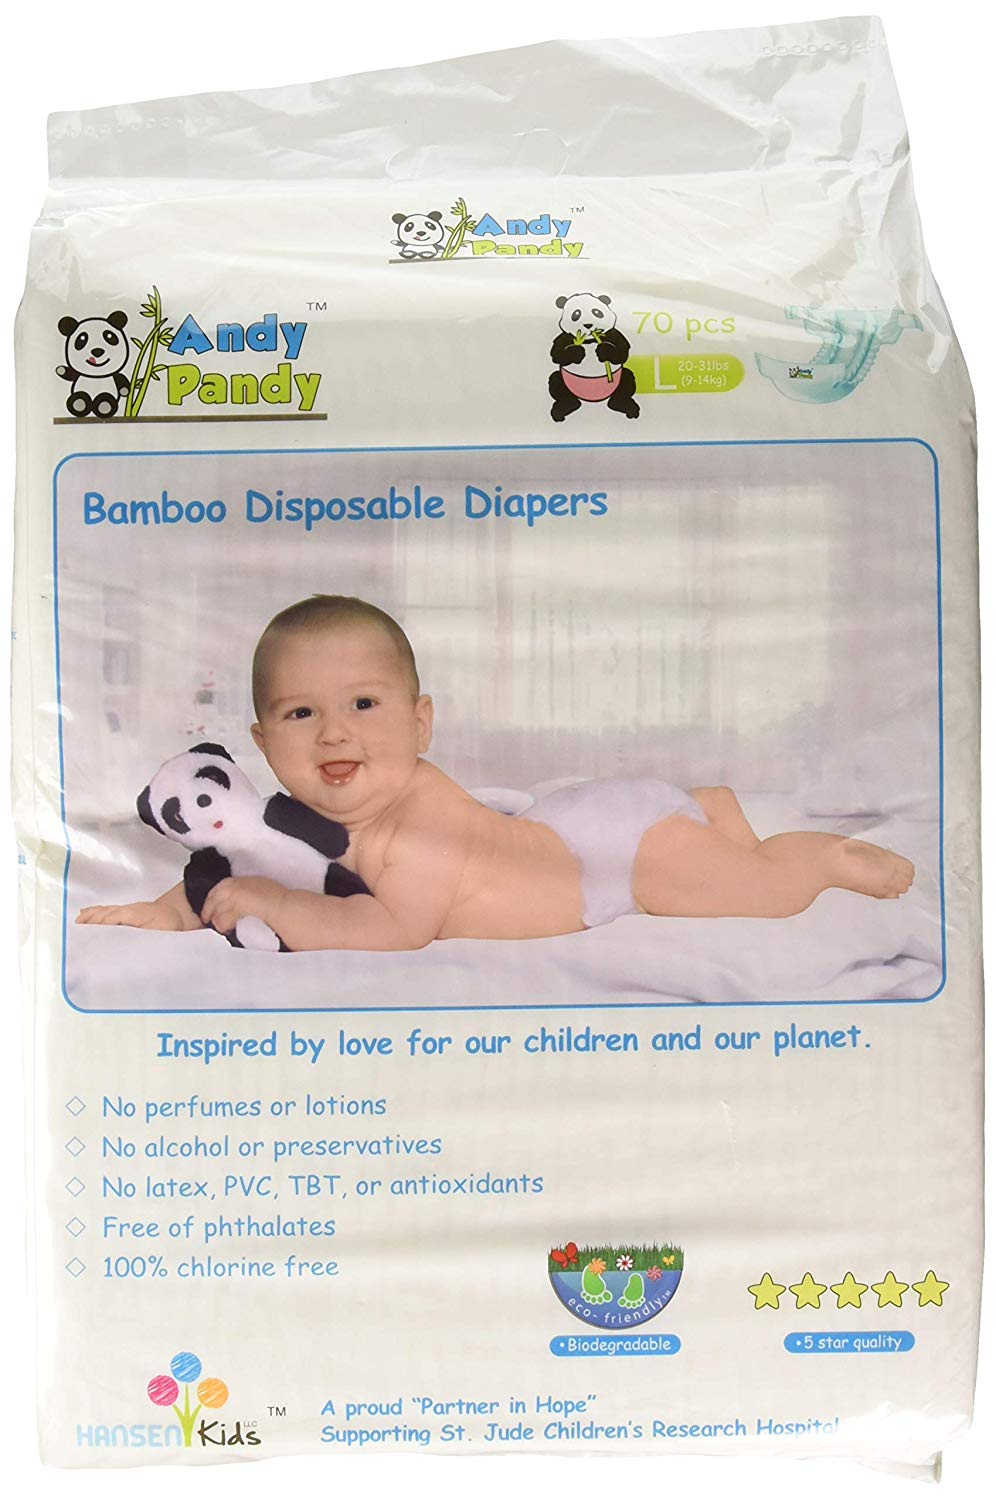 10. Eco-Friendly Premium Bamboo Disposable Diapers